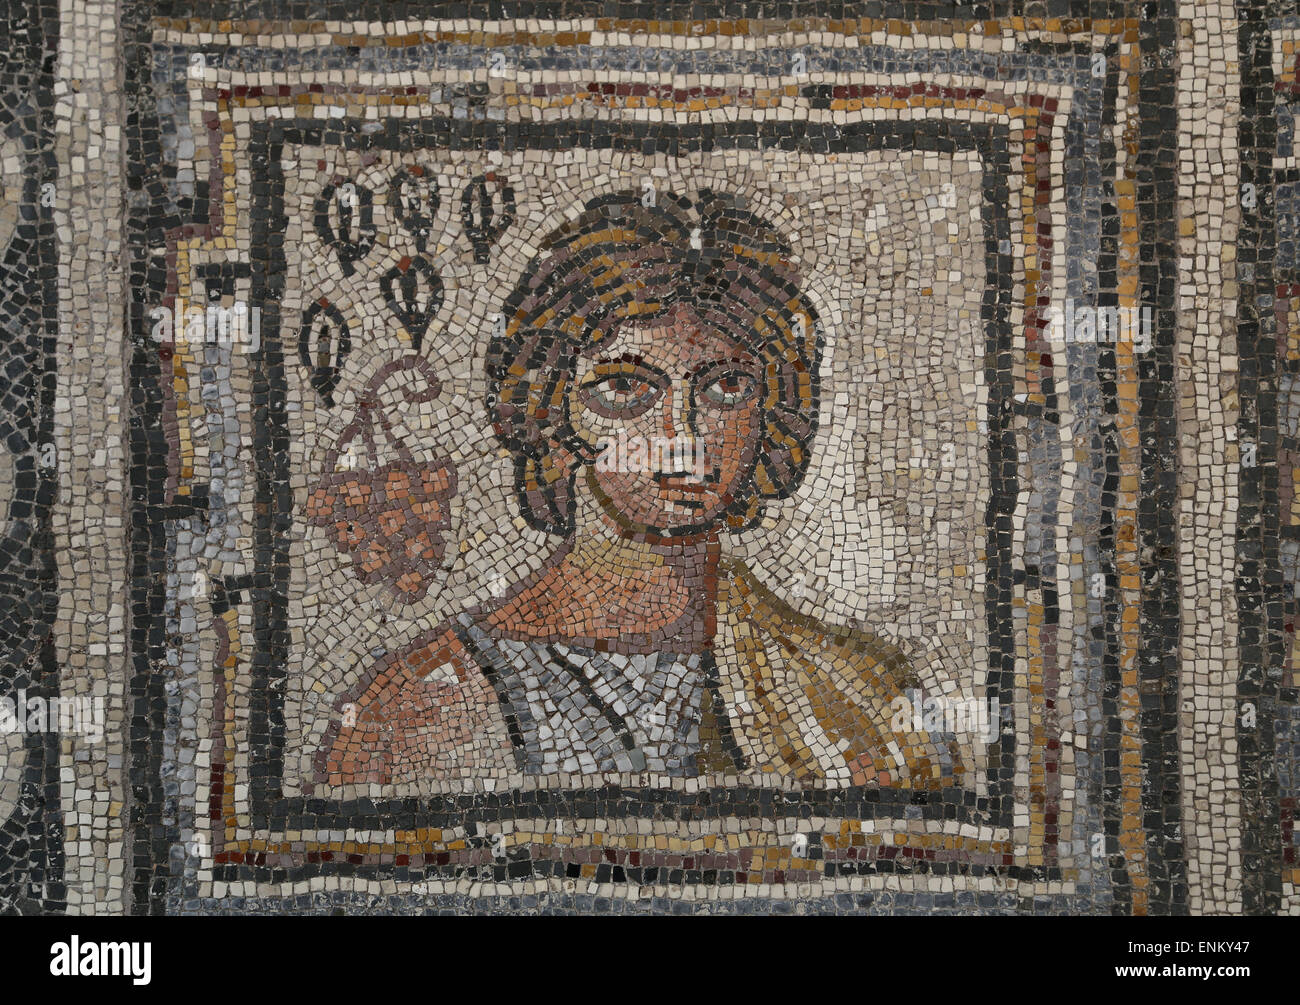 Roman mosaic with the seasons. Rome, Le Campanelle, Via Appia Nouva. 4th-5th century AD. National Roman Museum. - Stock Image